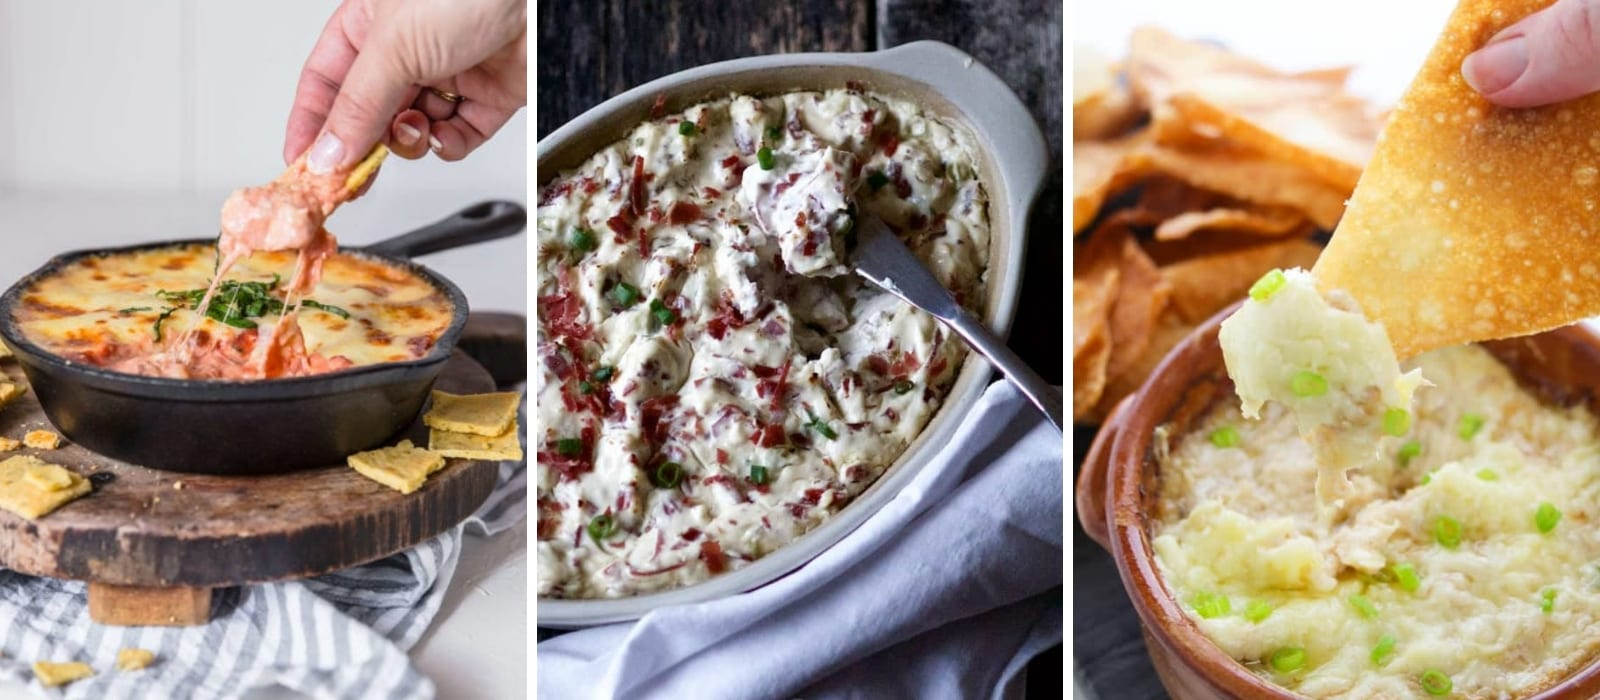 Hot Dip Recipes for Your Next Wine Tasting Party| The Best Hot Dip Recipes| Hot Dips for Your Wine Party| Hot Dips for Parties| Appetizers You Need at your Wine Tasting Party| #hotdip #recipes #appetizer #wineanddine #dip